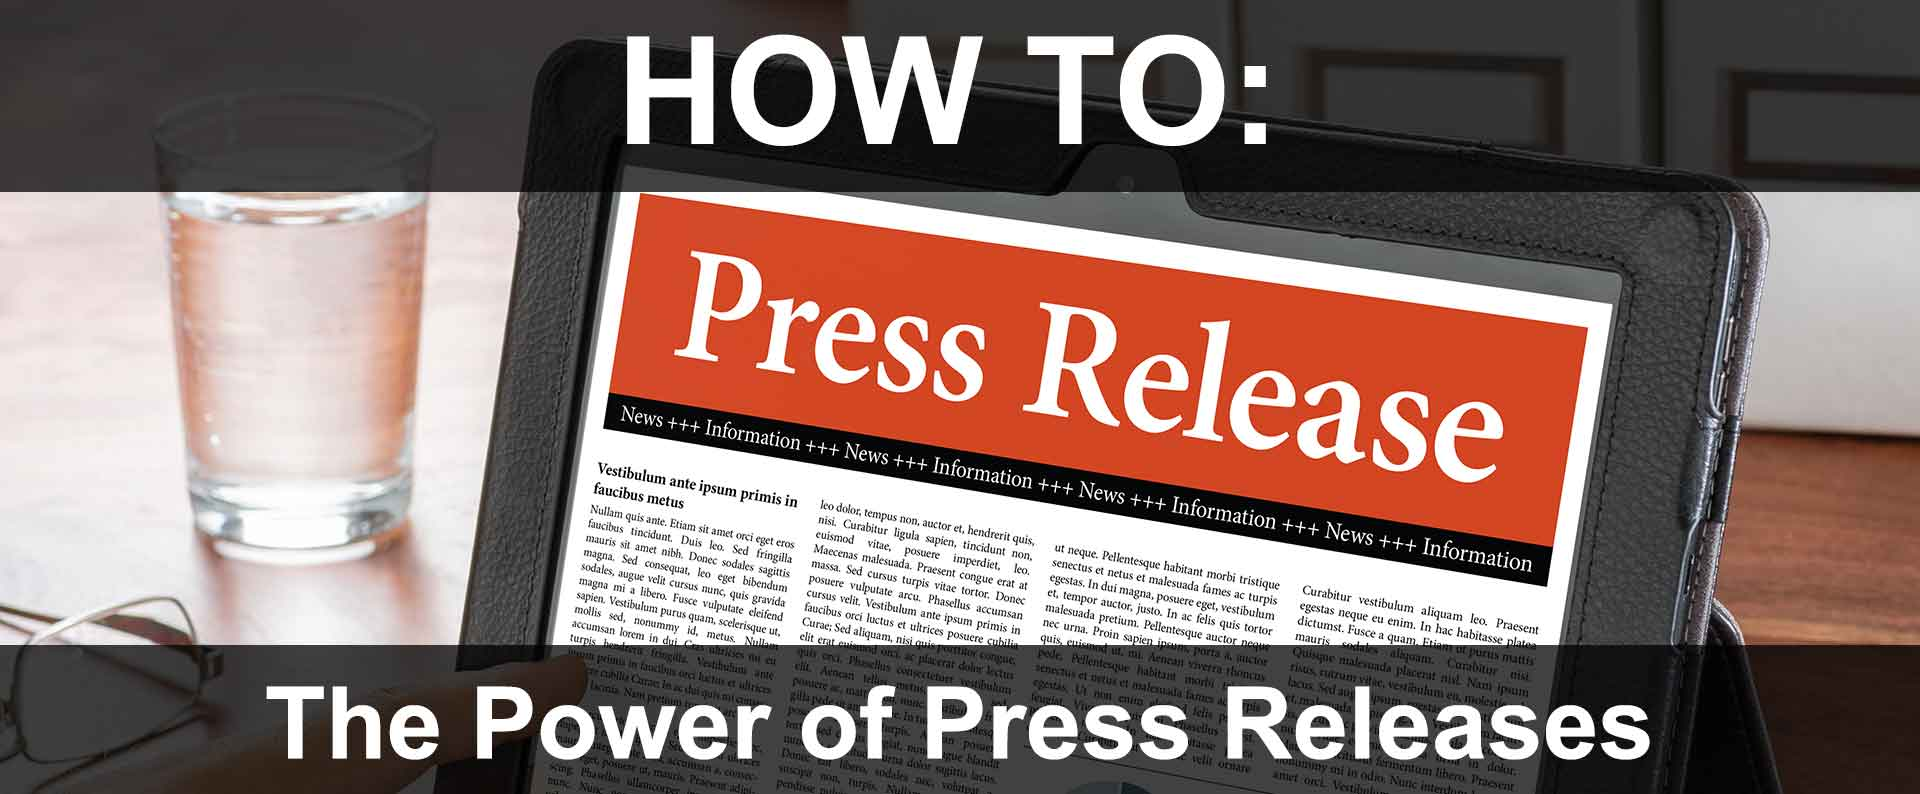 Using Press Releases to Increase Market Awareness & Search Engine Ranking